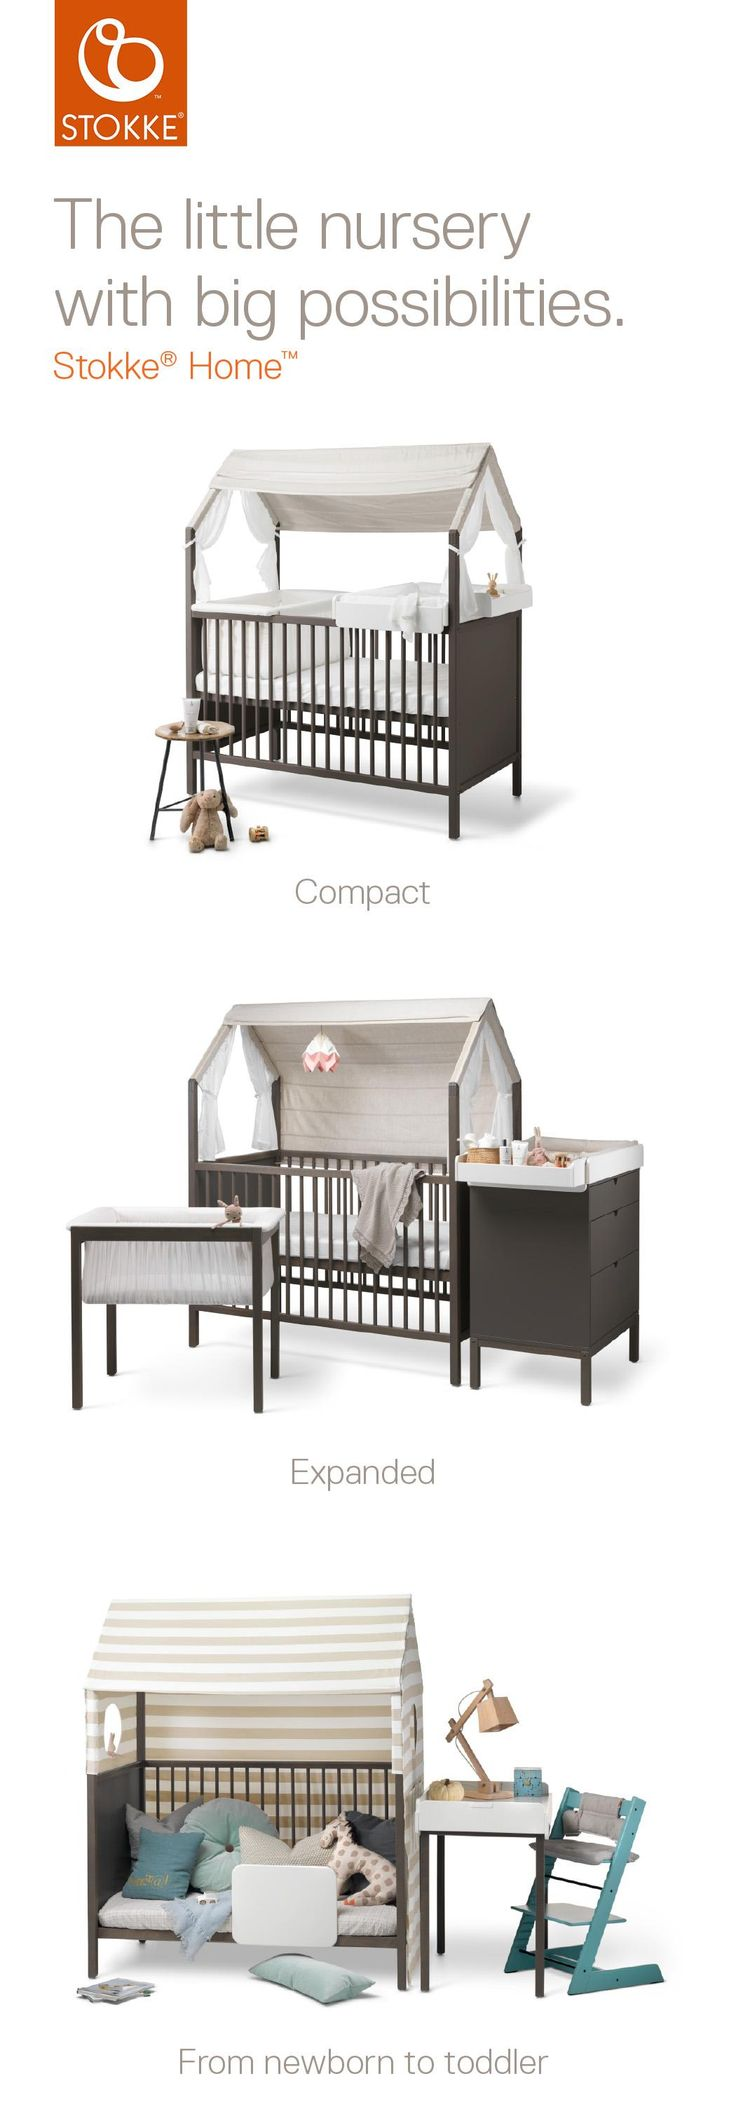 Stokke Home: The Modern & Modular Scandinavian Nursery that Grows with Your Child! Available in Hazy Grey and White